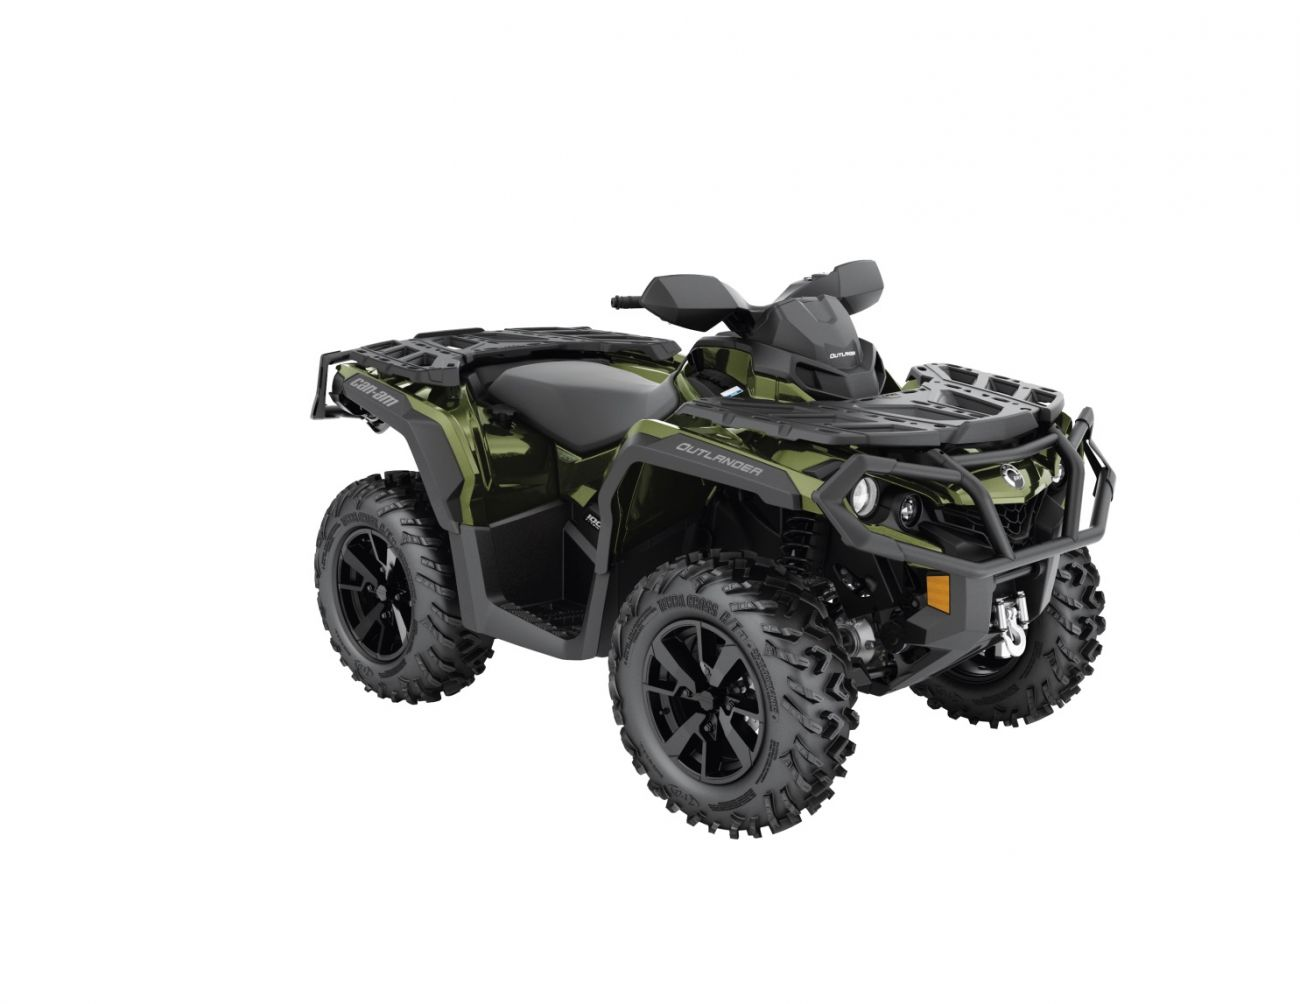 POWERSPORTS CANAM ORV_IMAGERY OUTLANDER MY21 ORV_ATV_MY21_OUT_XT_1000R_Bore_120720105420_lowres